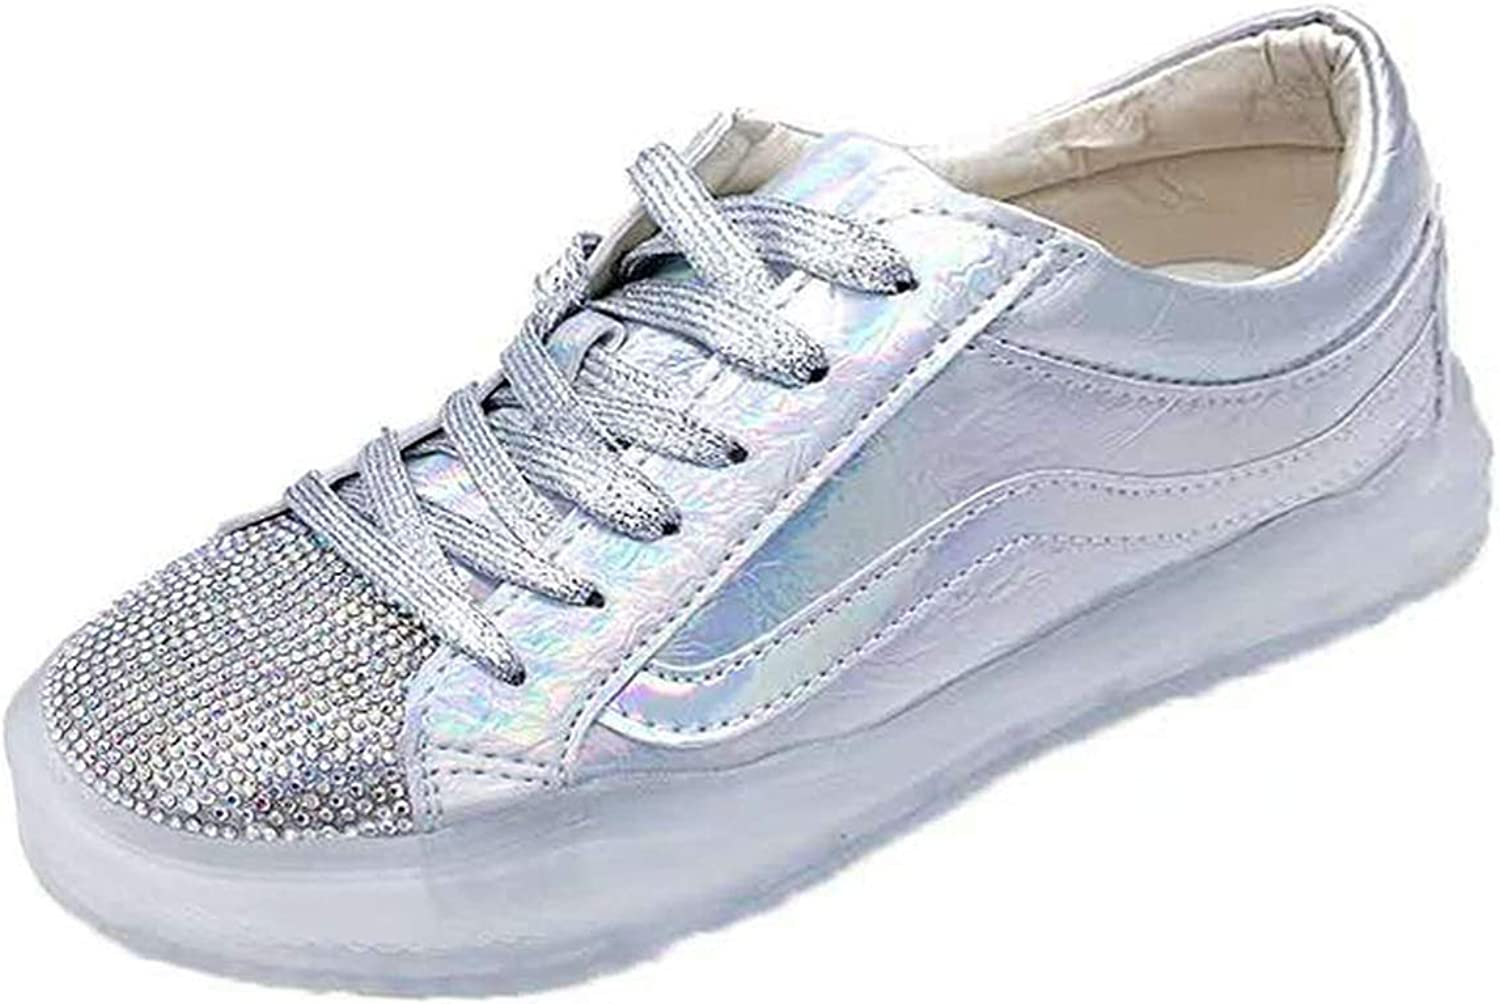 I Need-You 2019 New Ladies Spring Summer shoes Shiny Flat Form Casual Sneaker for Women Students,Silver,6